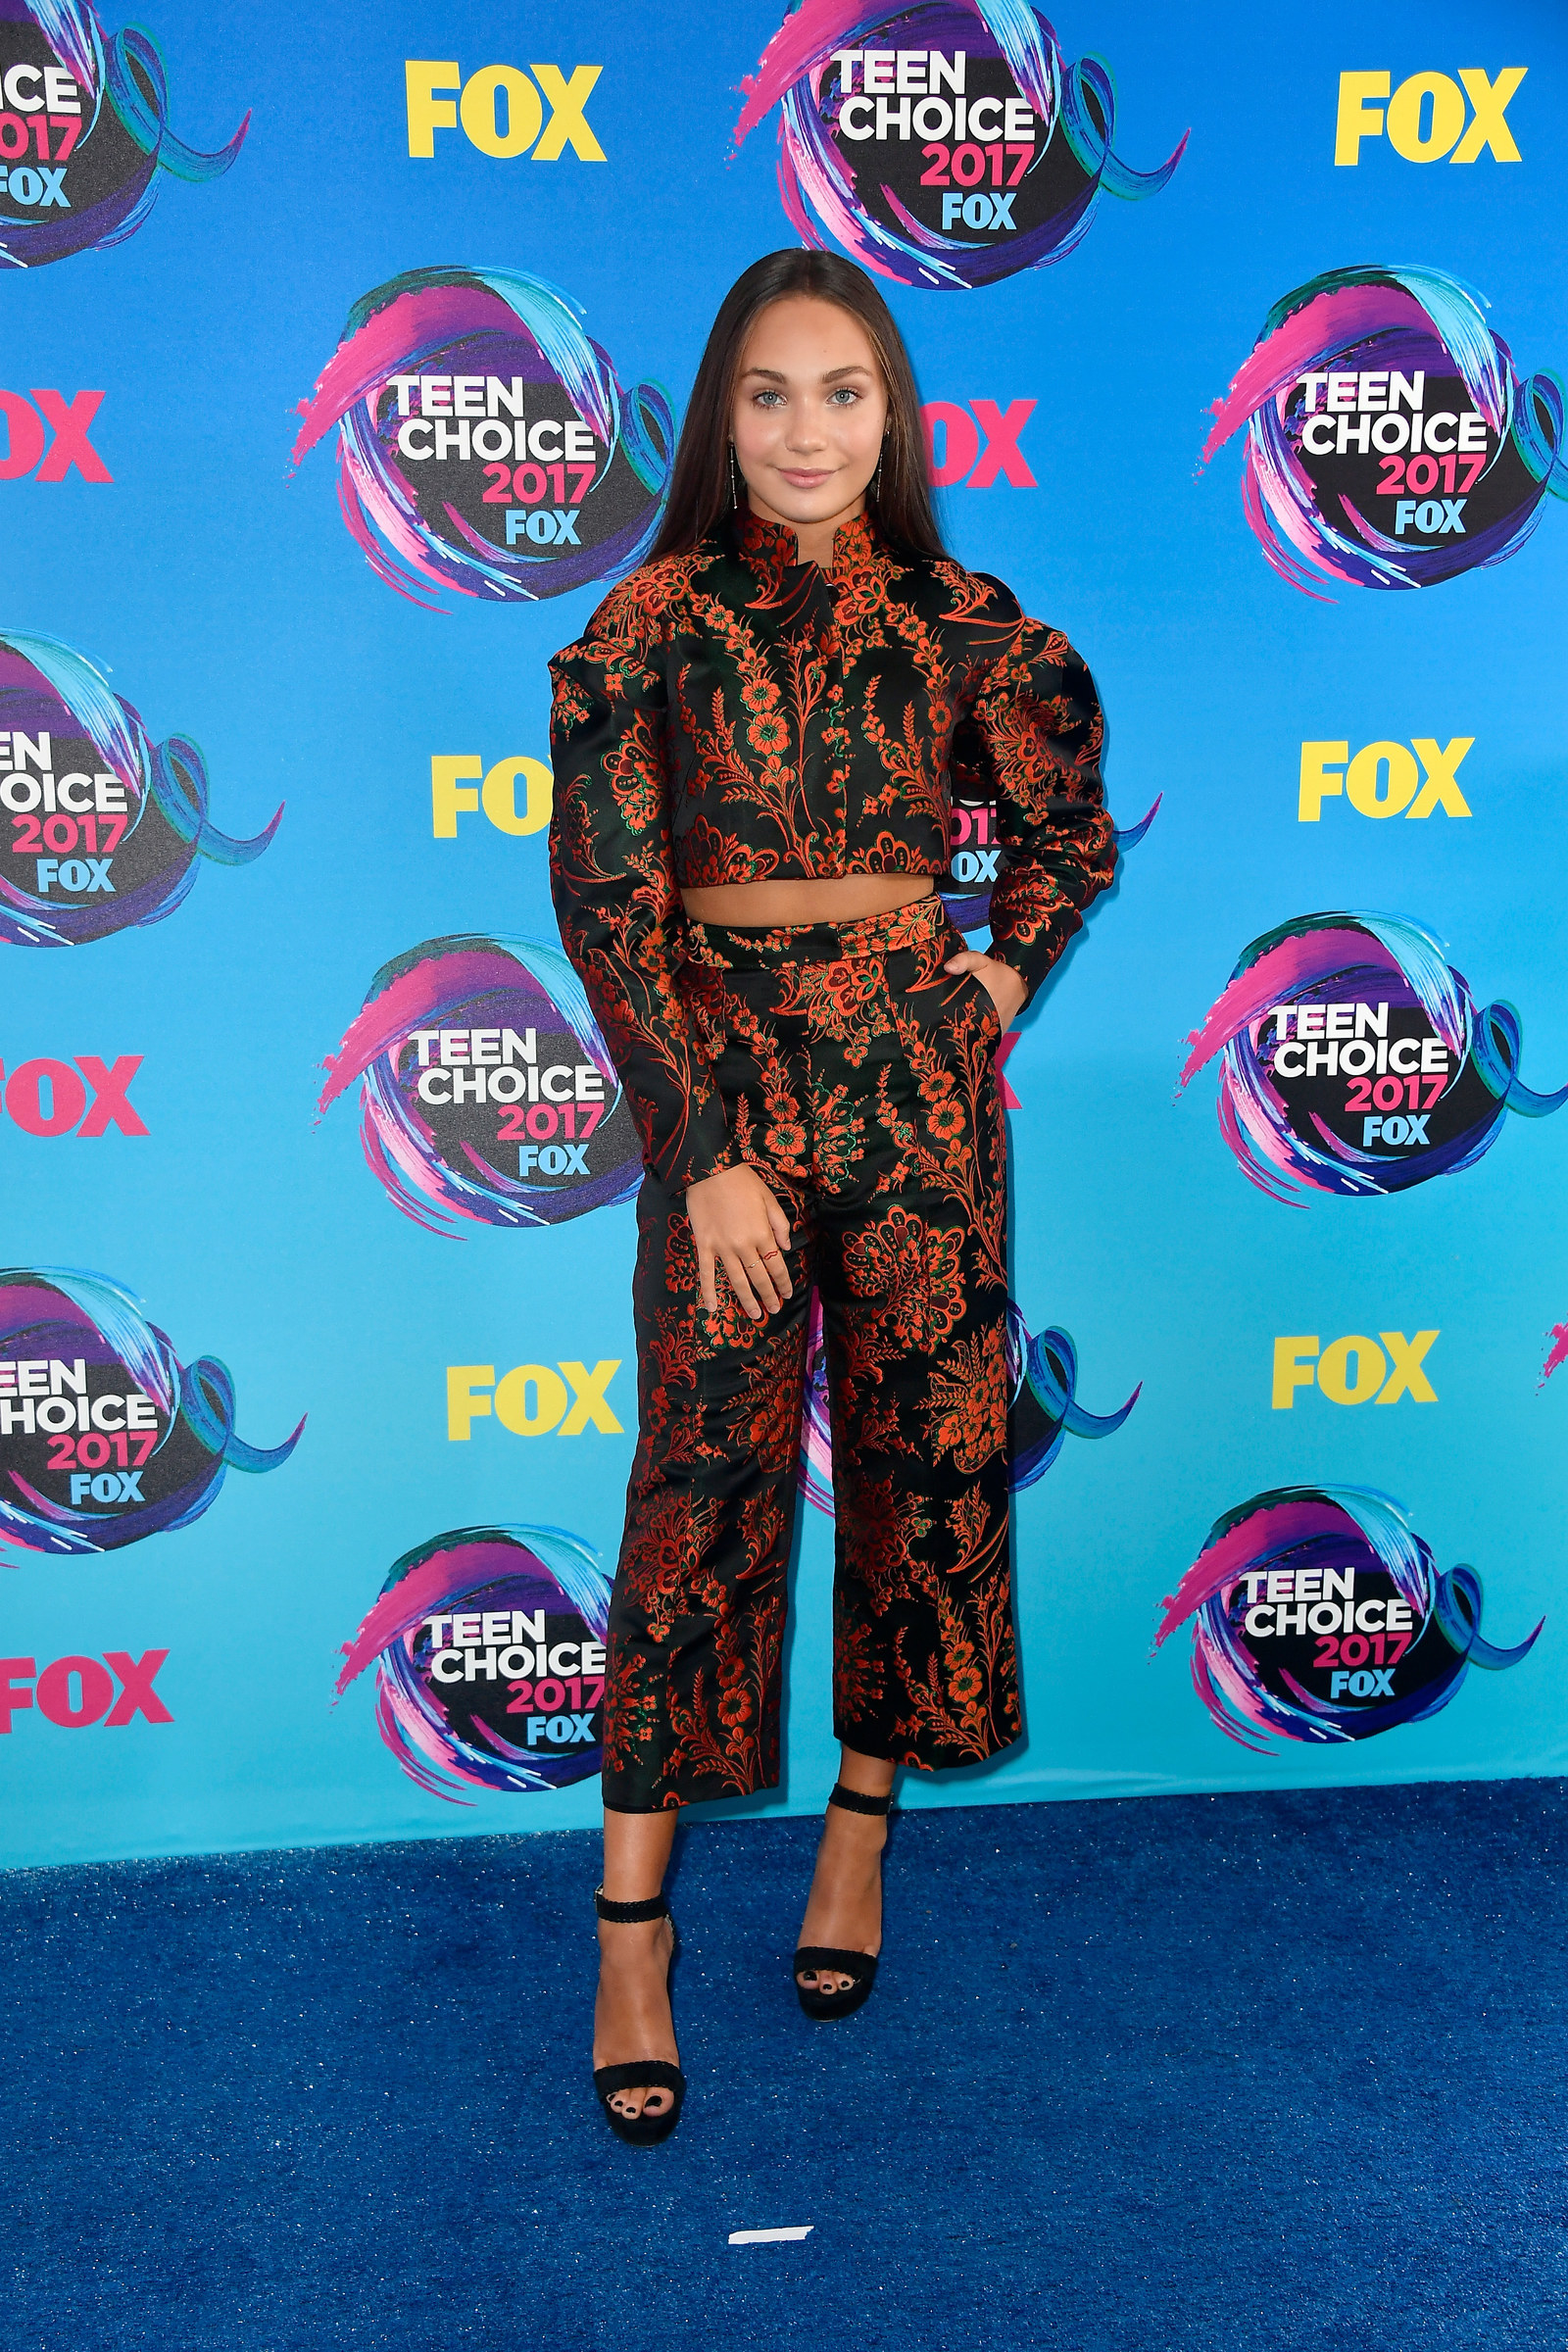 Style At The 2017 Teen Choice Awards